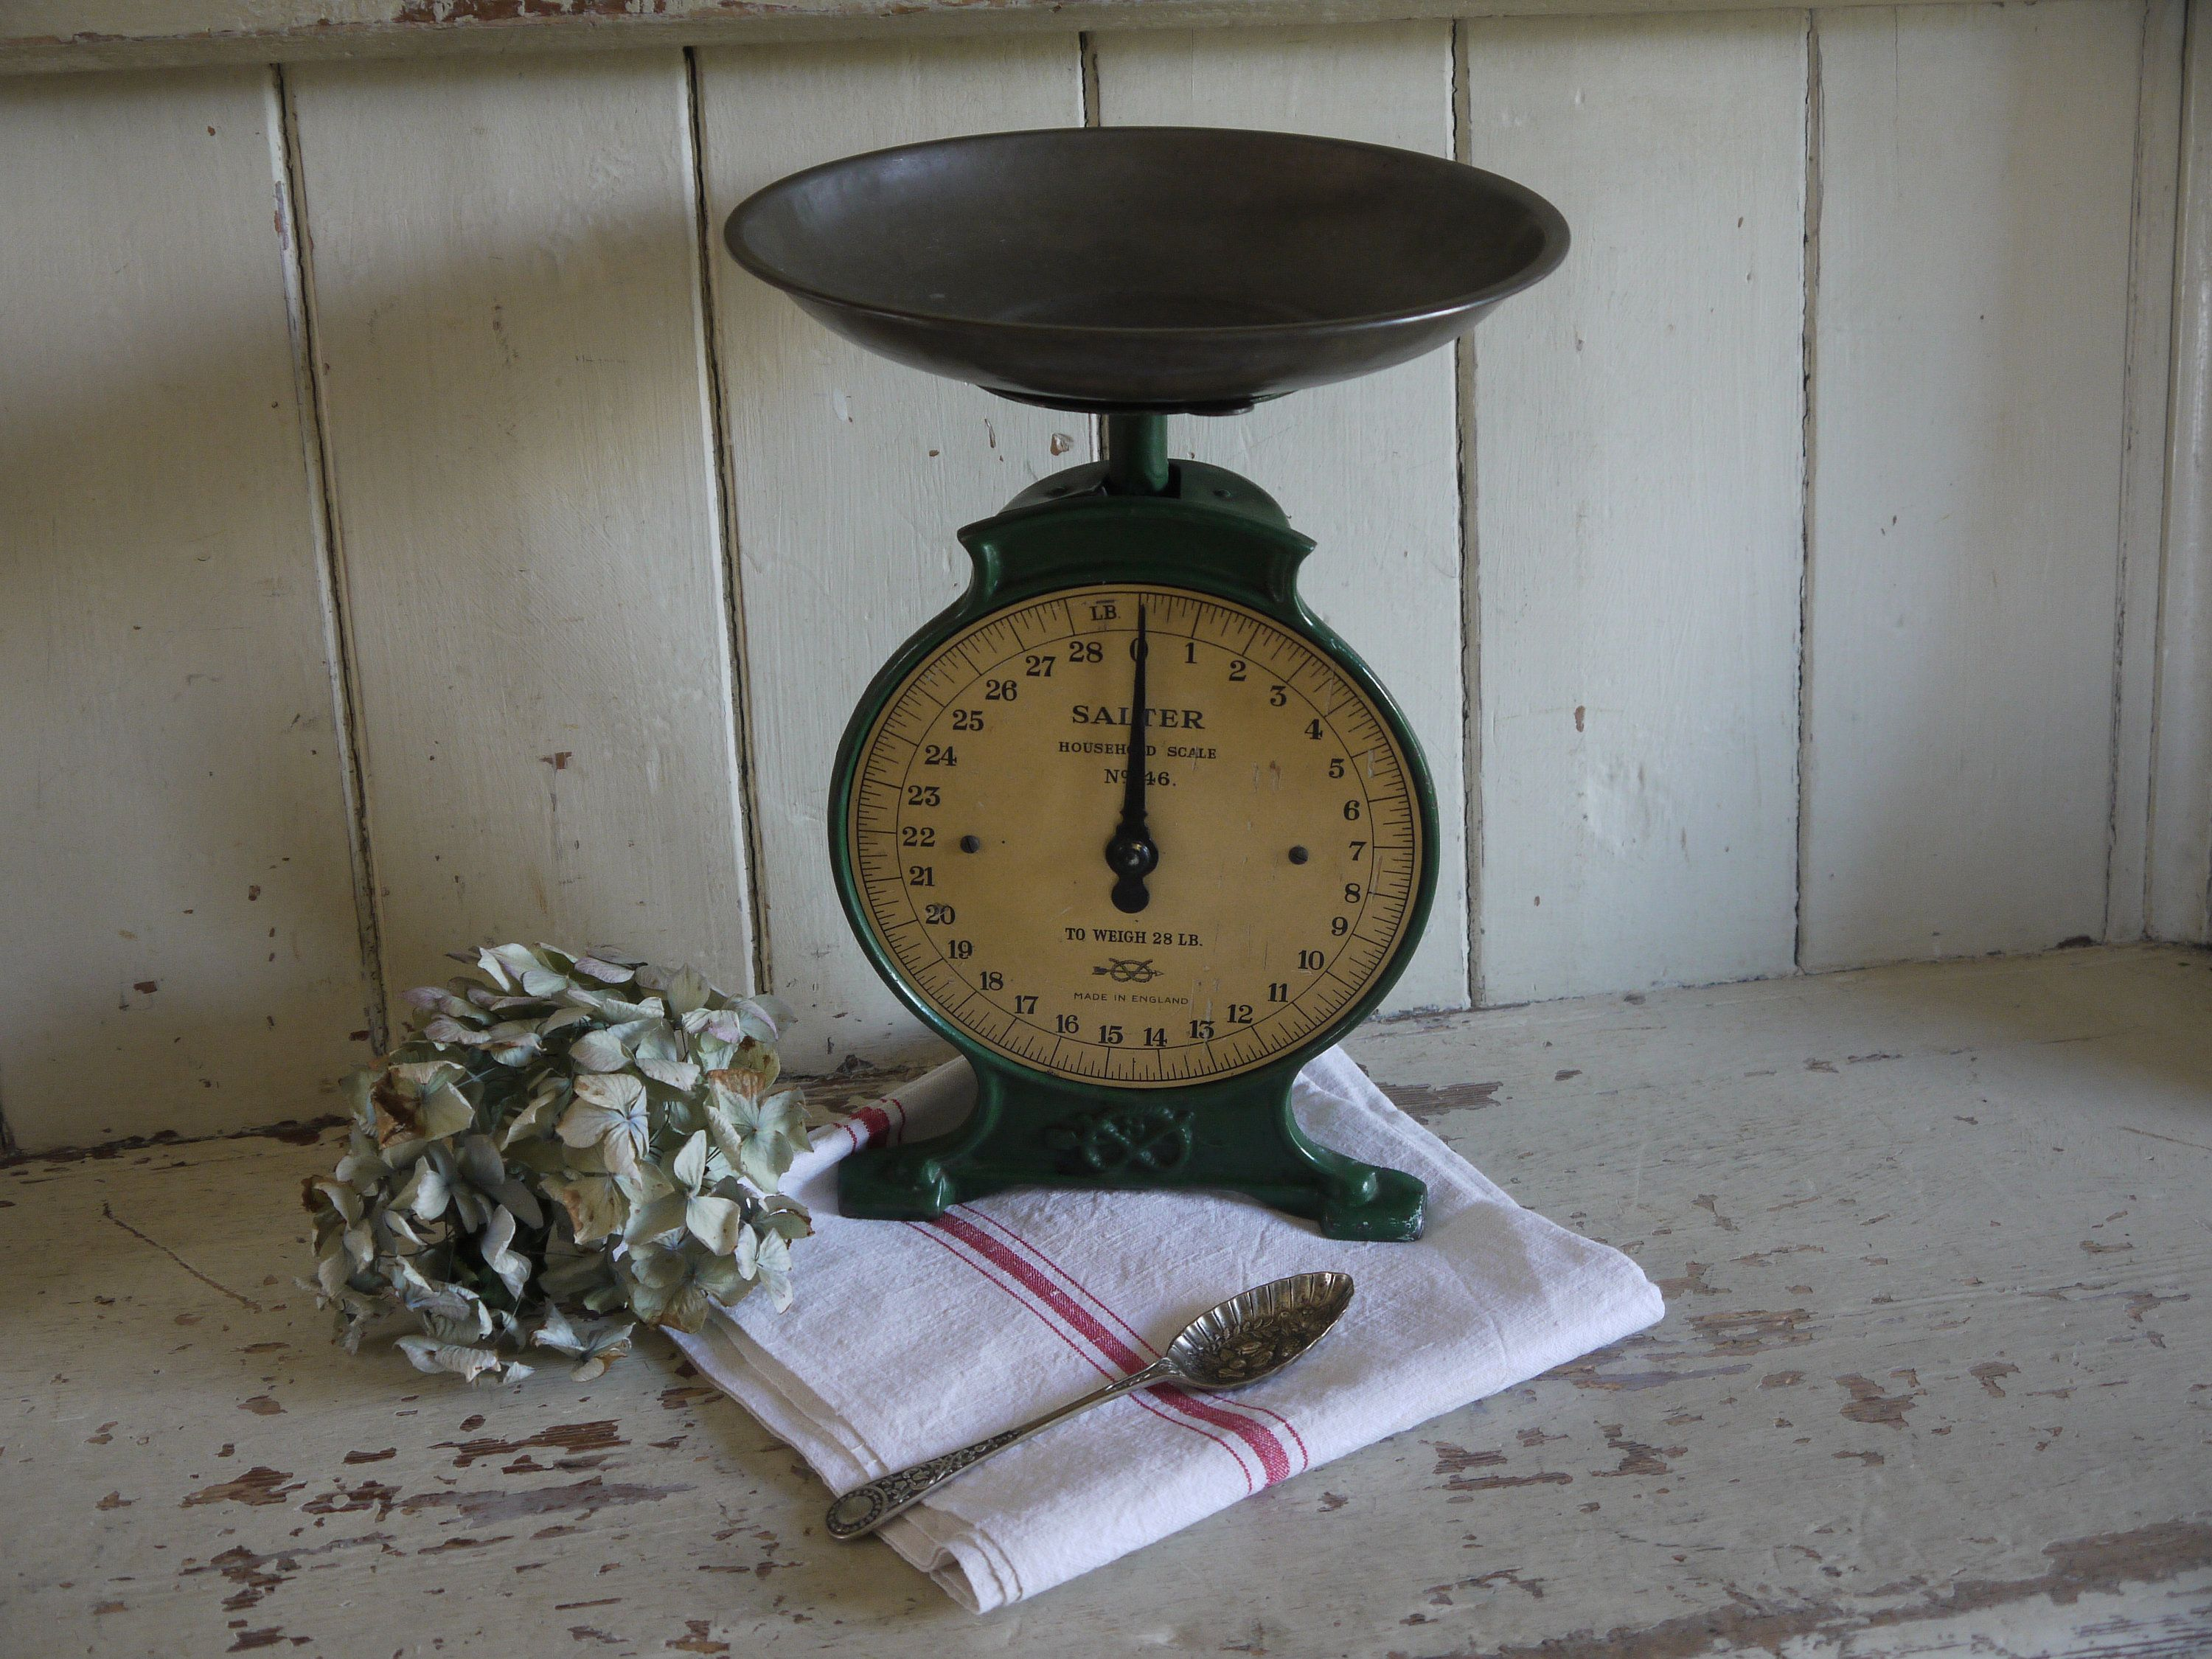 Vintage Kitchen Scale Vintage Kitchen Scales Farmhouse Scale Rustic Antique Weighing Scales Salter Household Scales English Scale Plant Pot Holders Antiques Vintage Kitchen